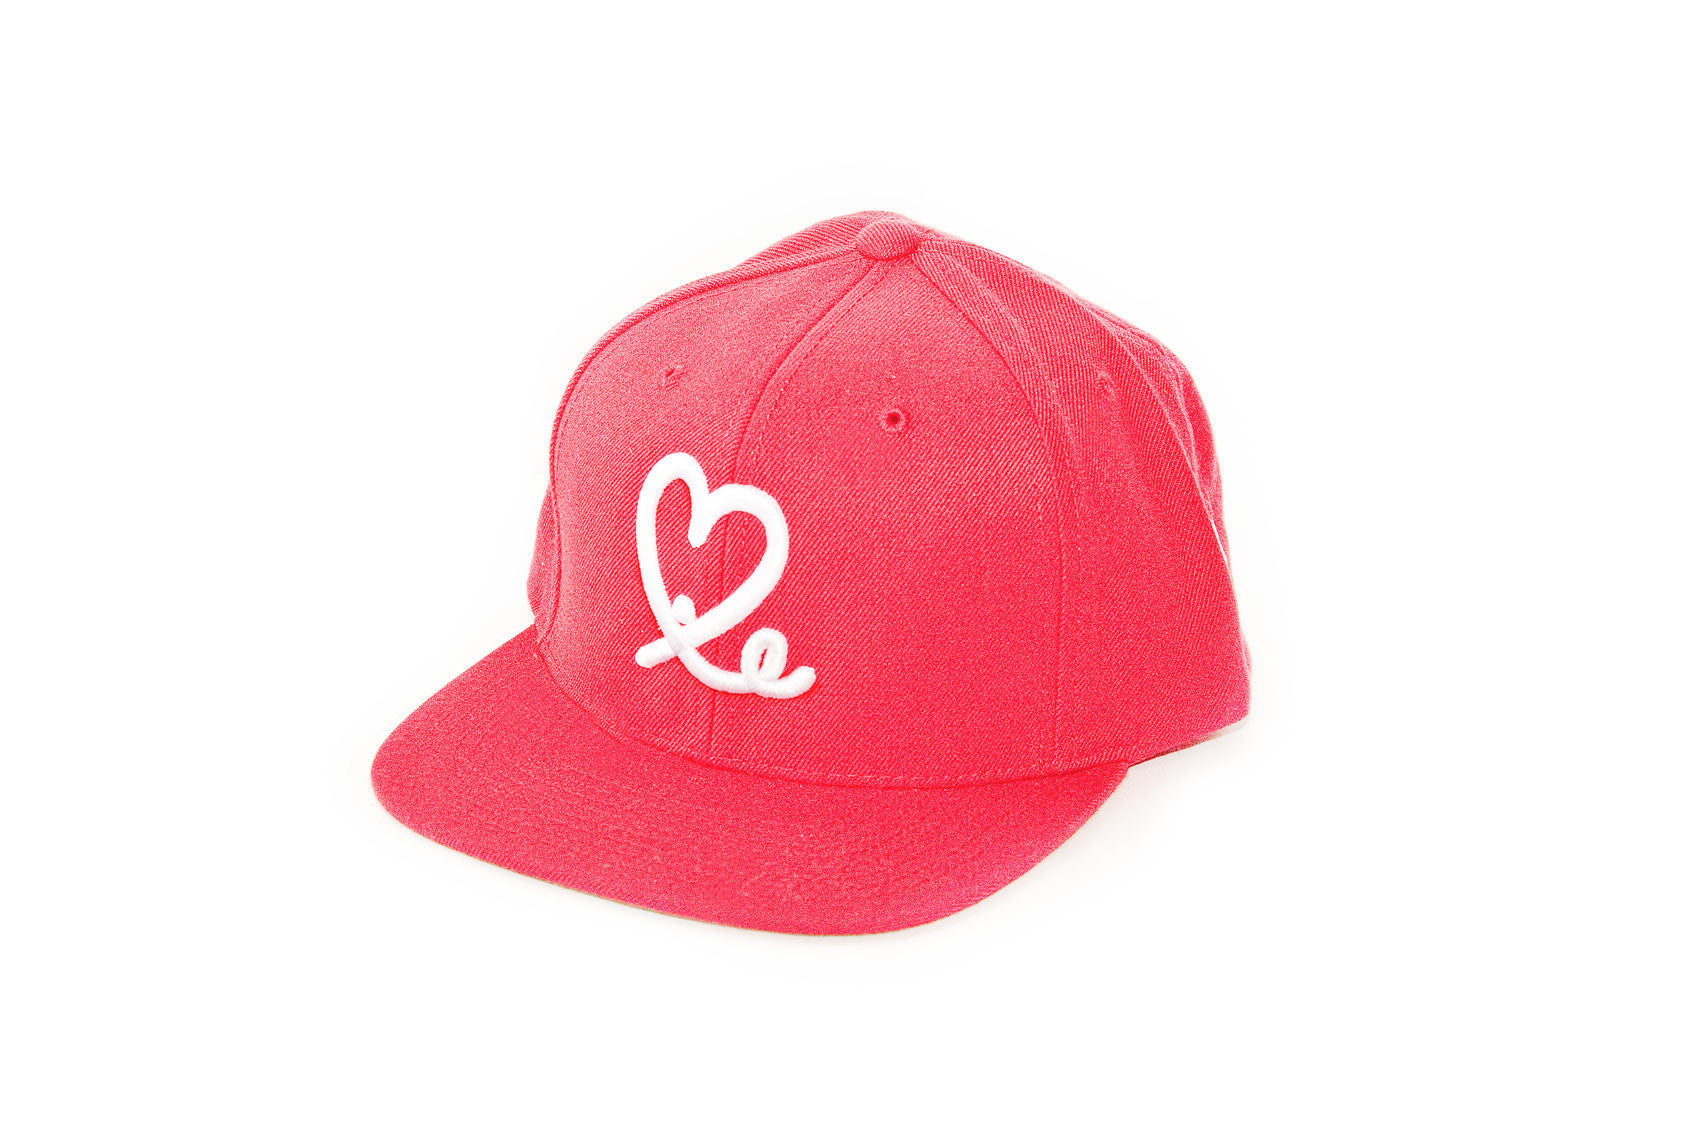 1LoveIE Snapback (Red /White)